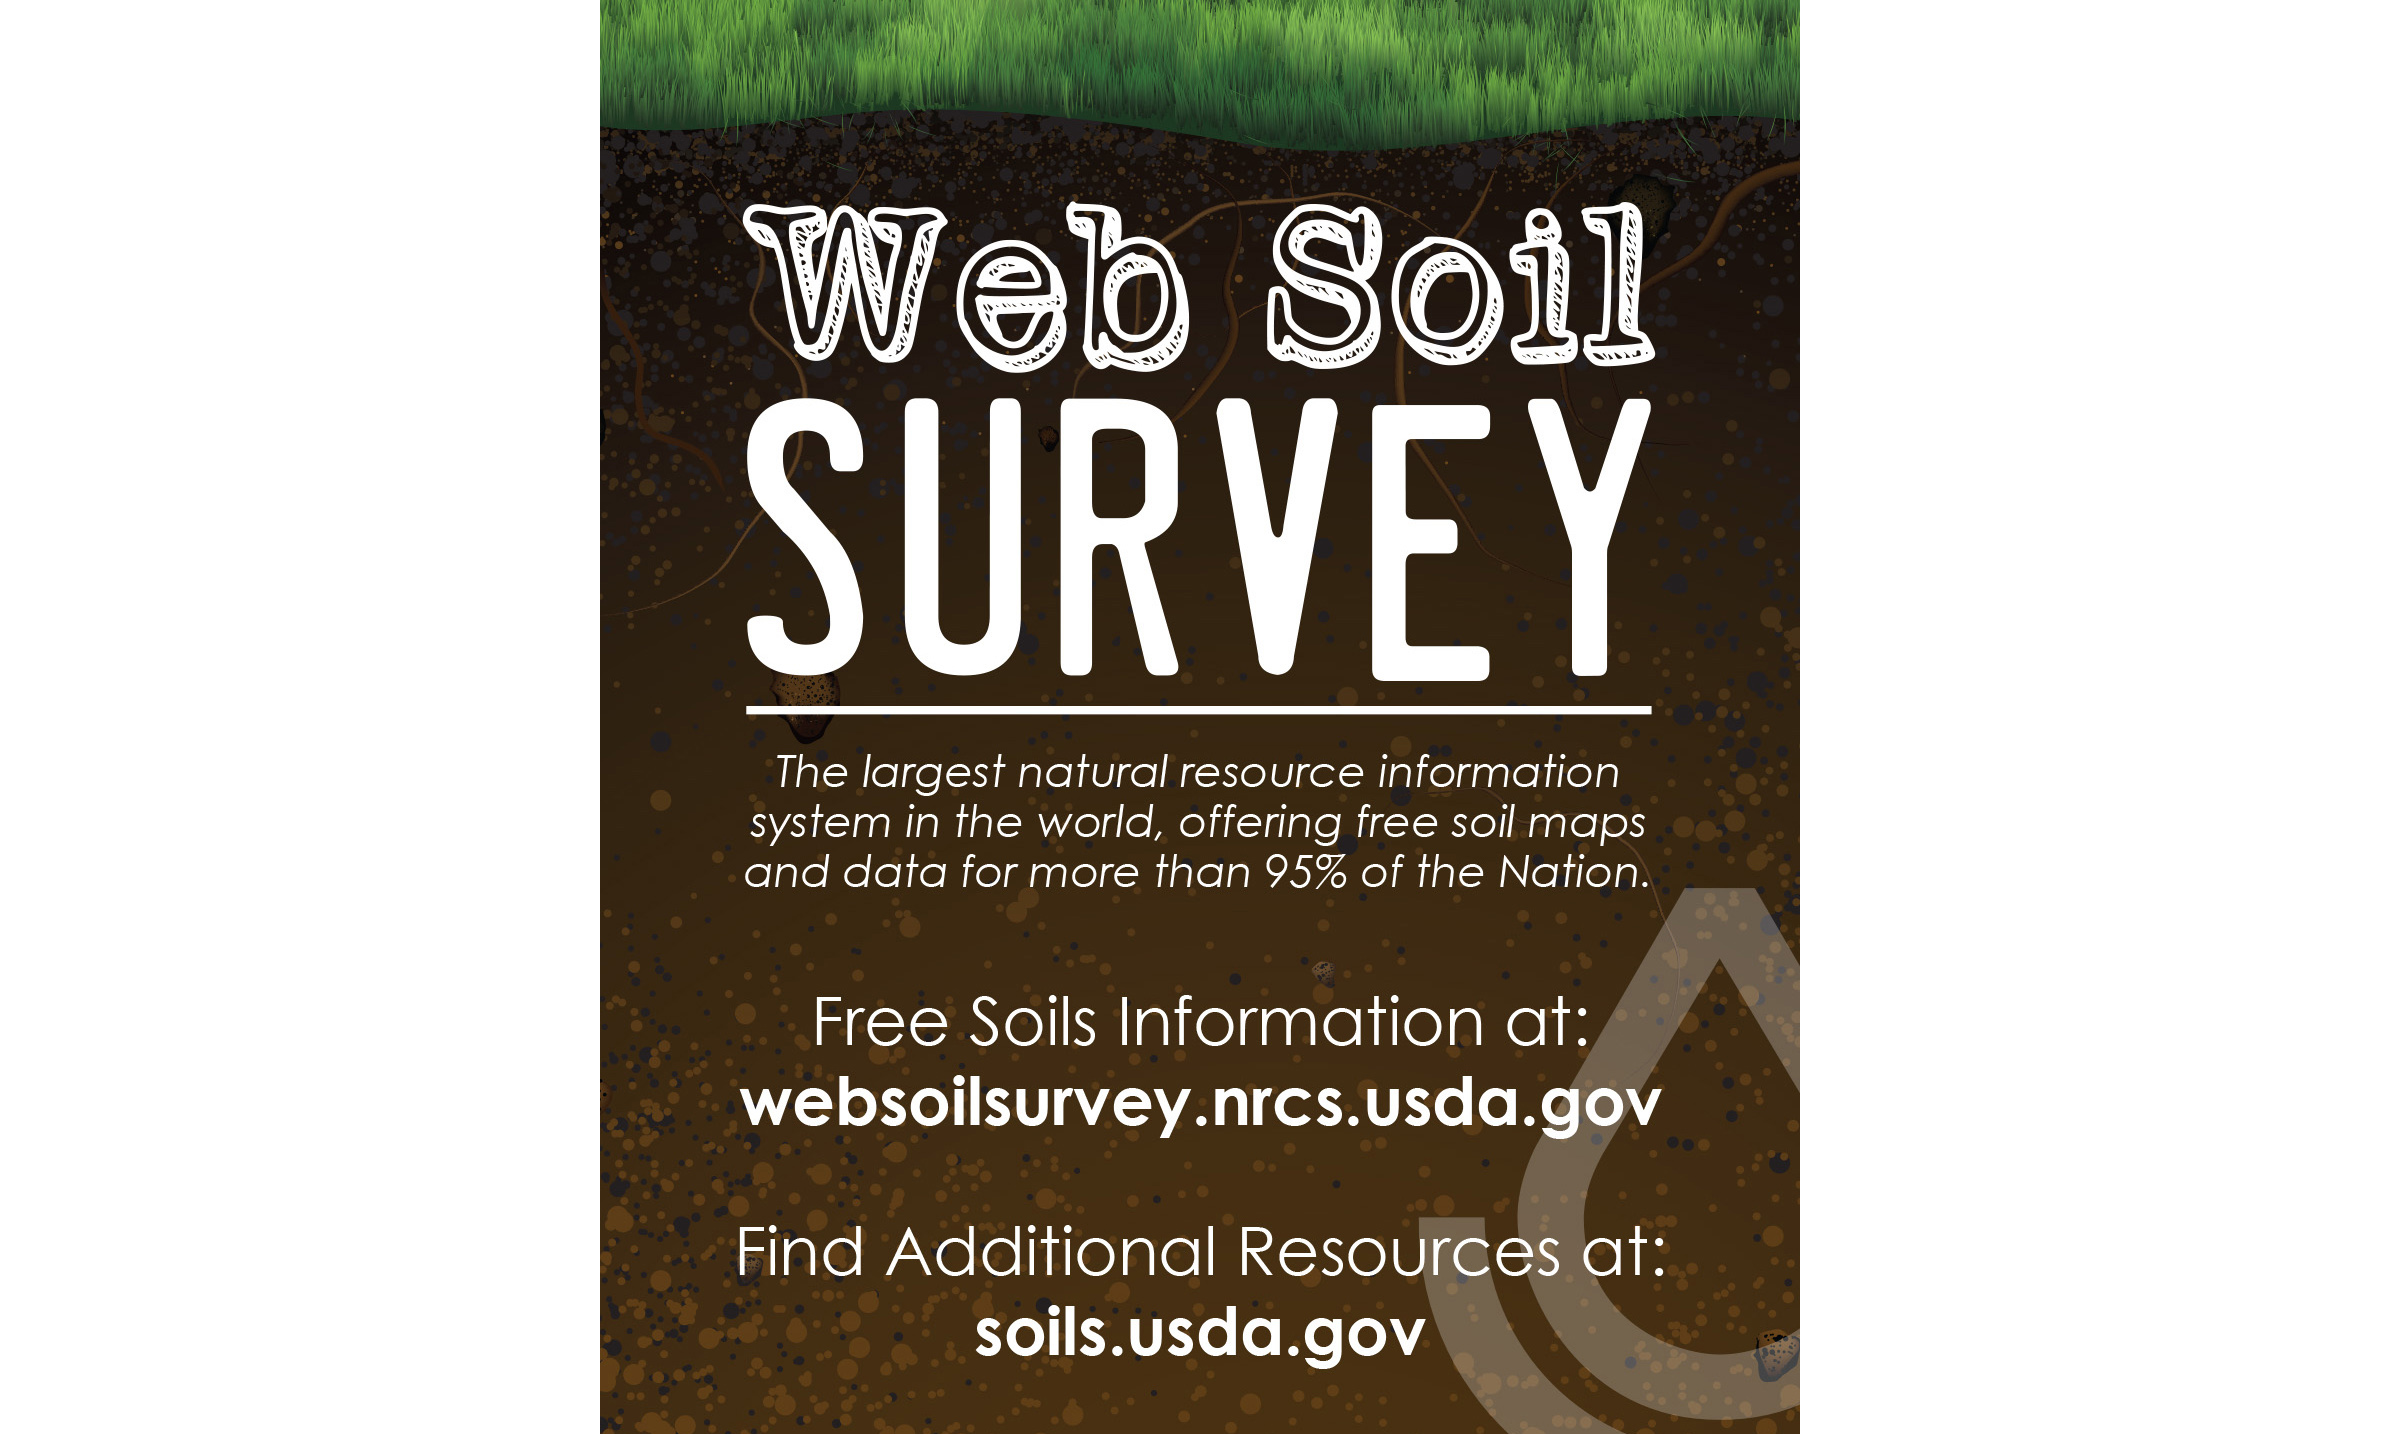 Web Soil Survey Graphic